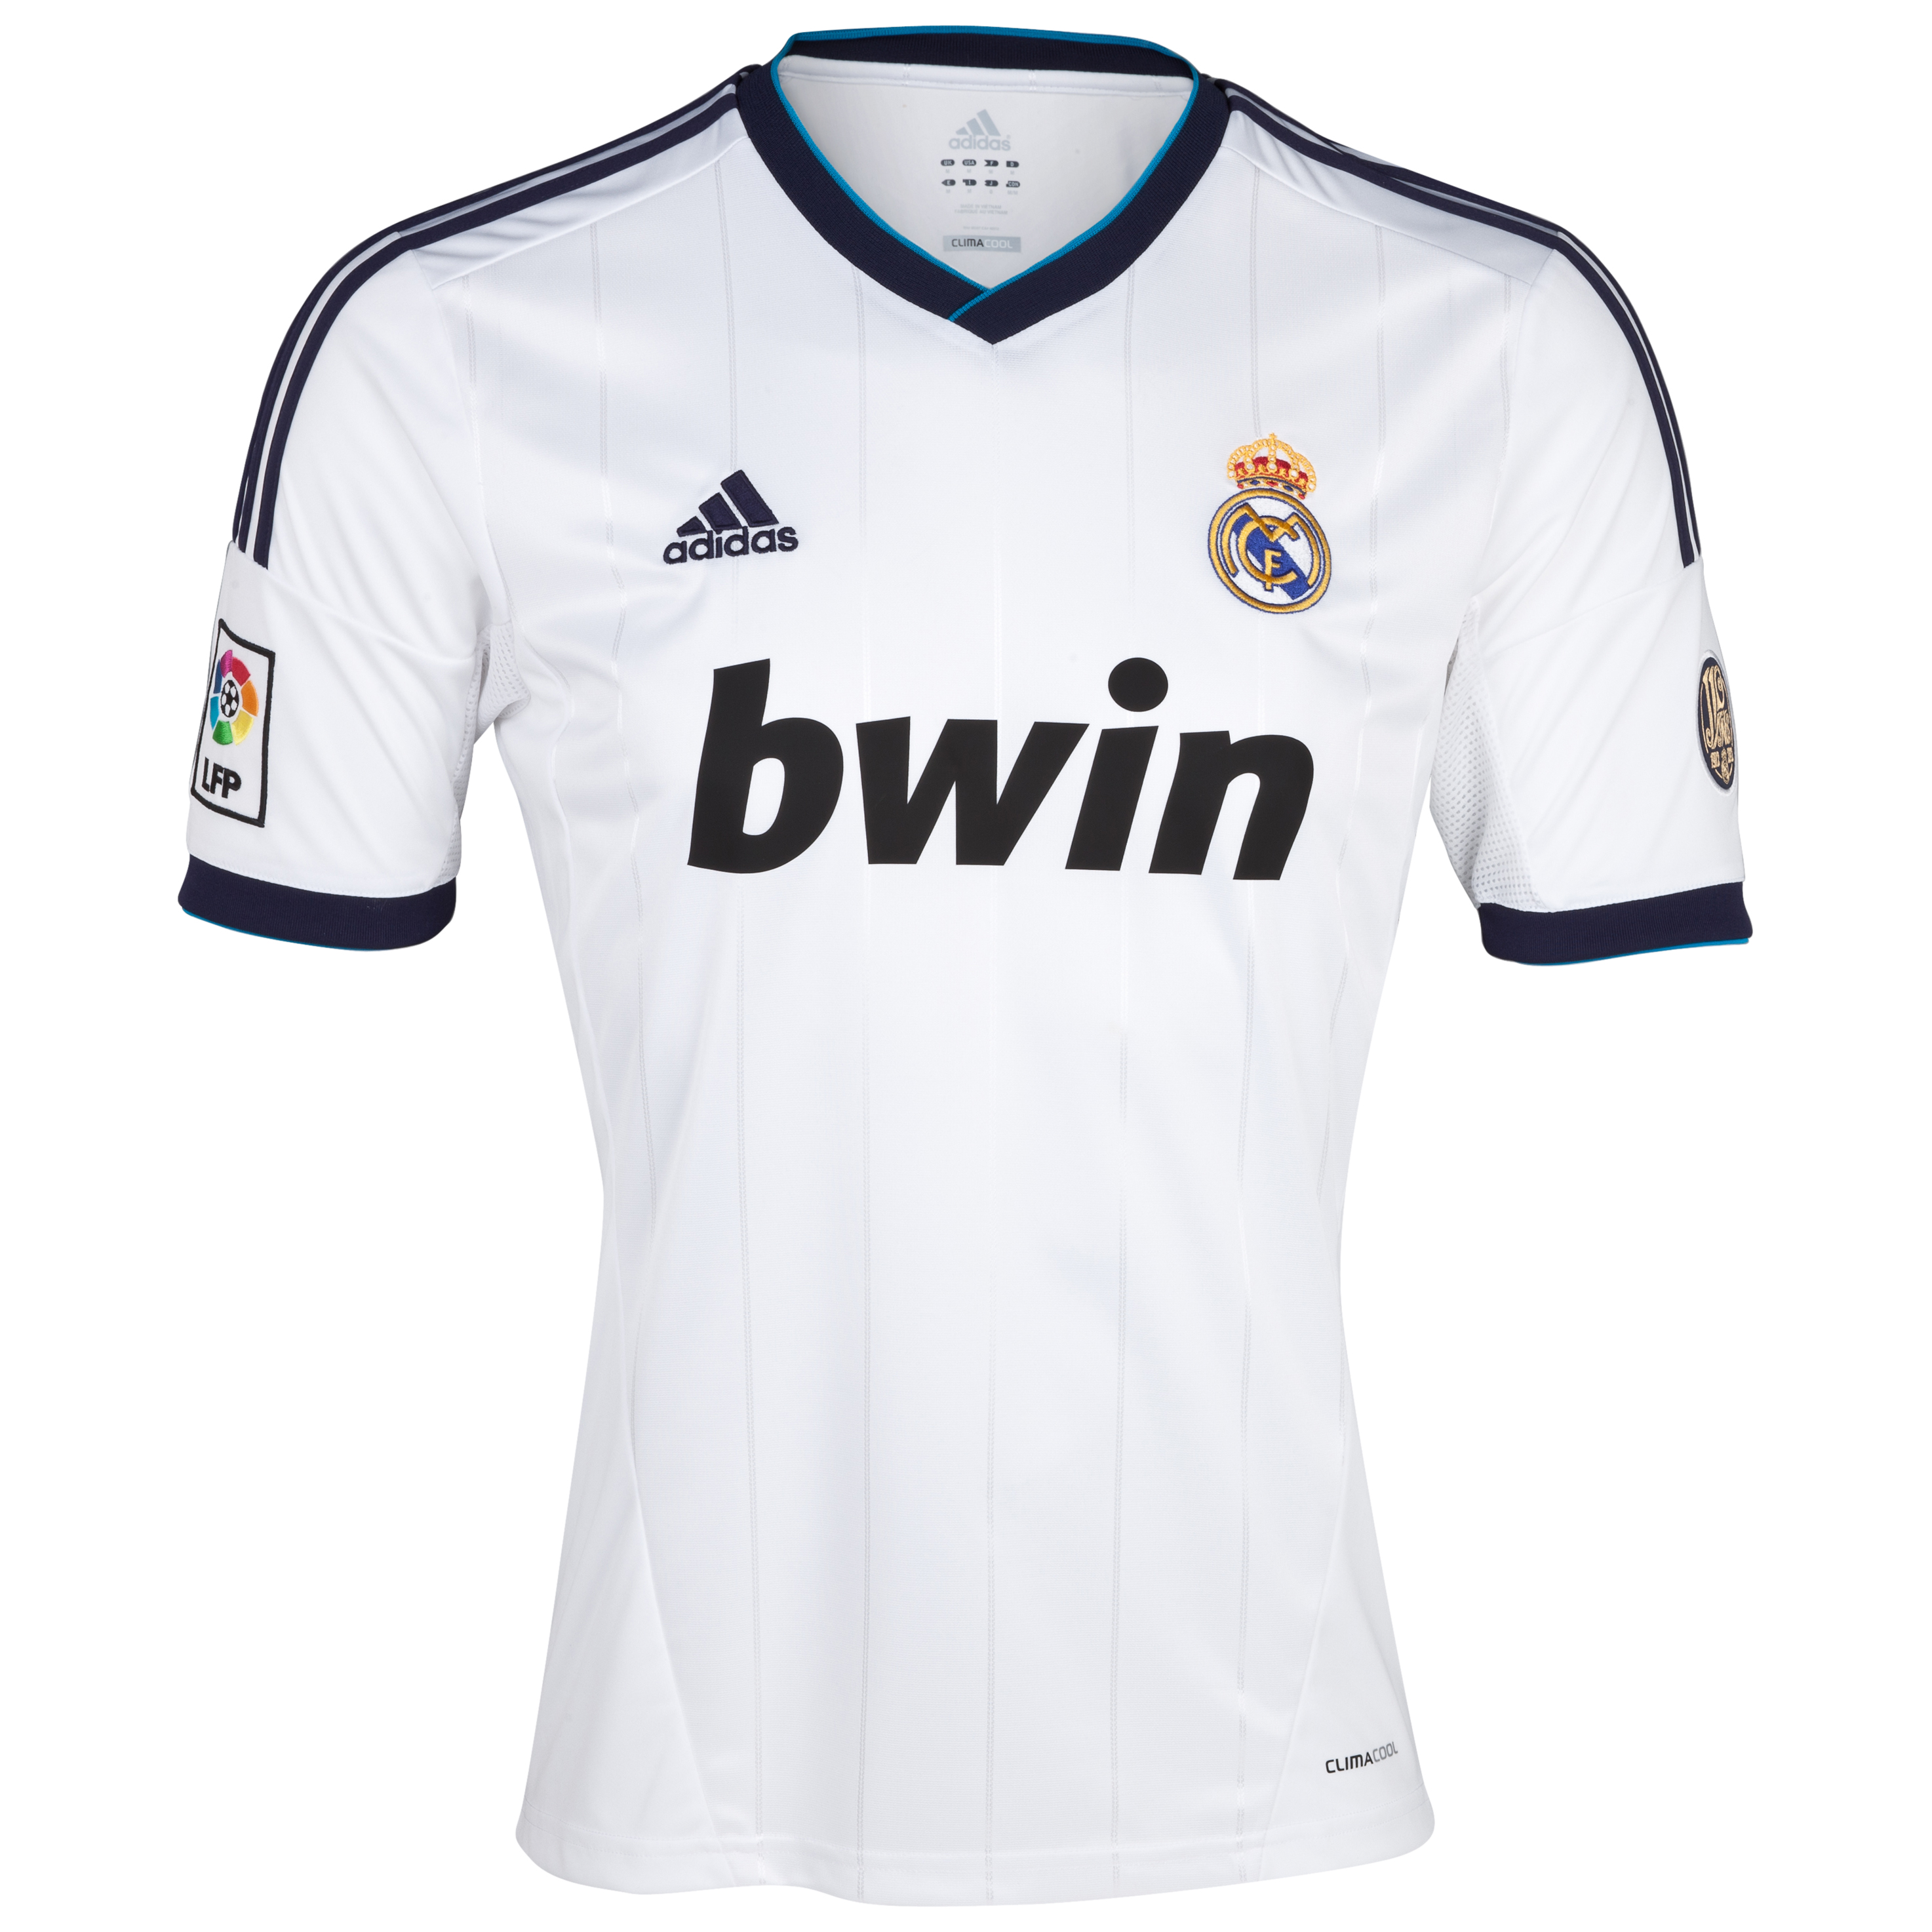 Camiseta 1 equipacin del Real Madrid 2012/13 Cadete